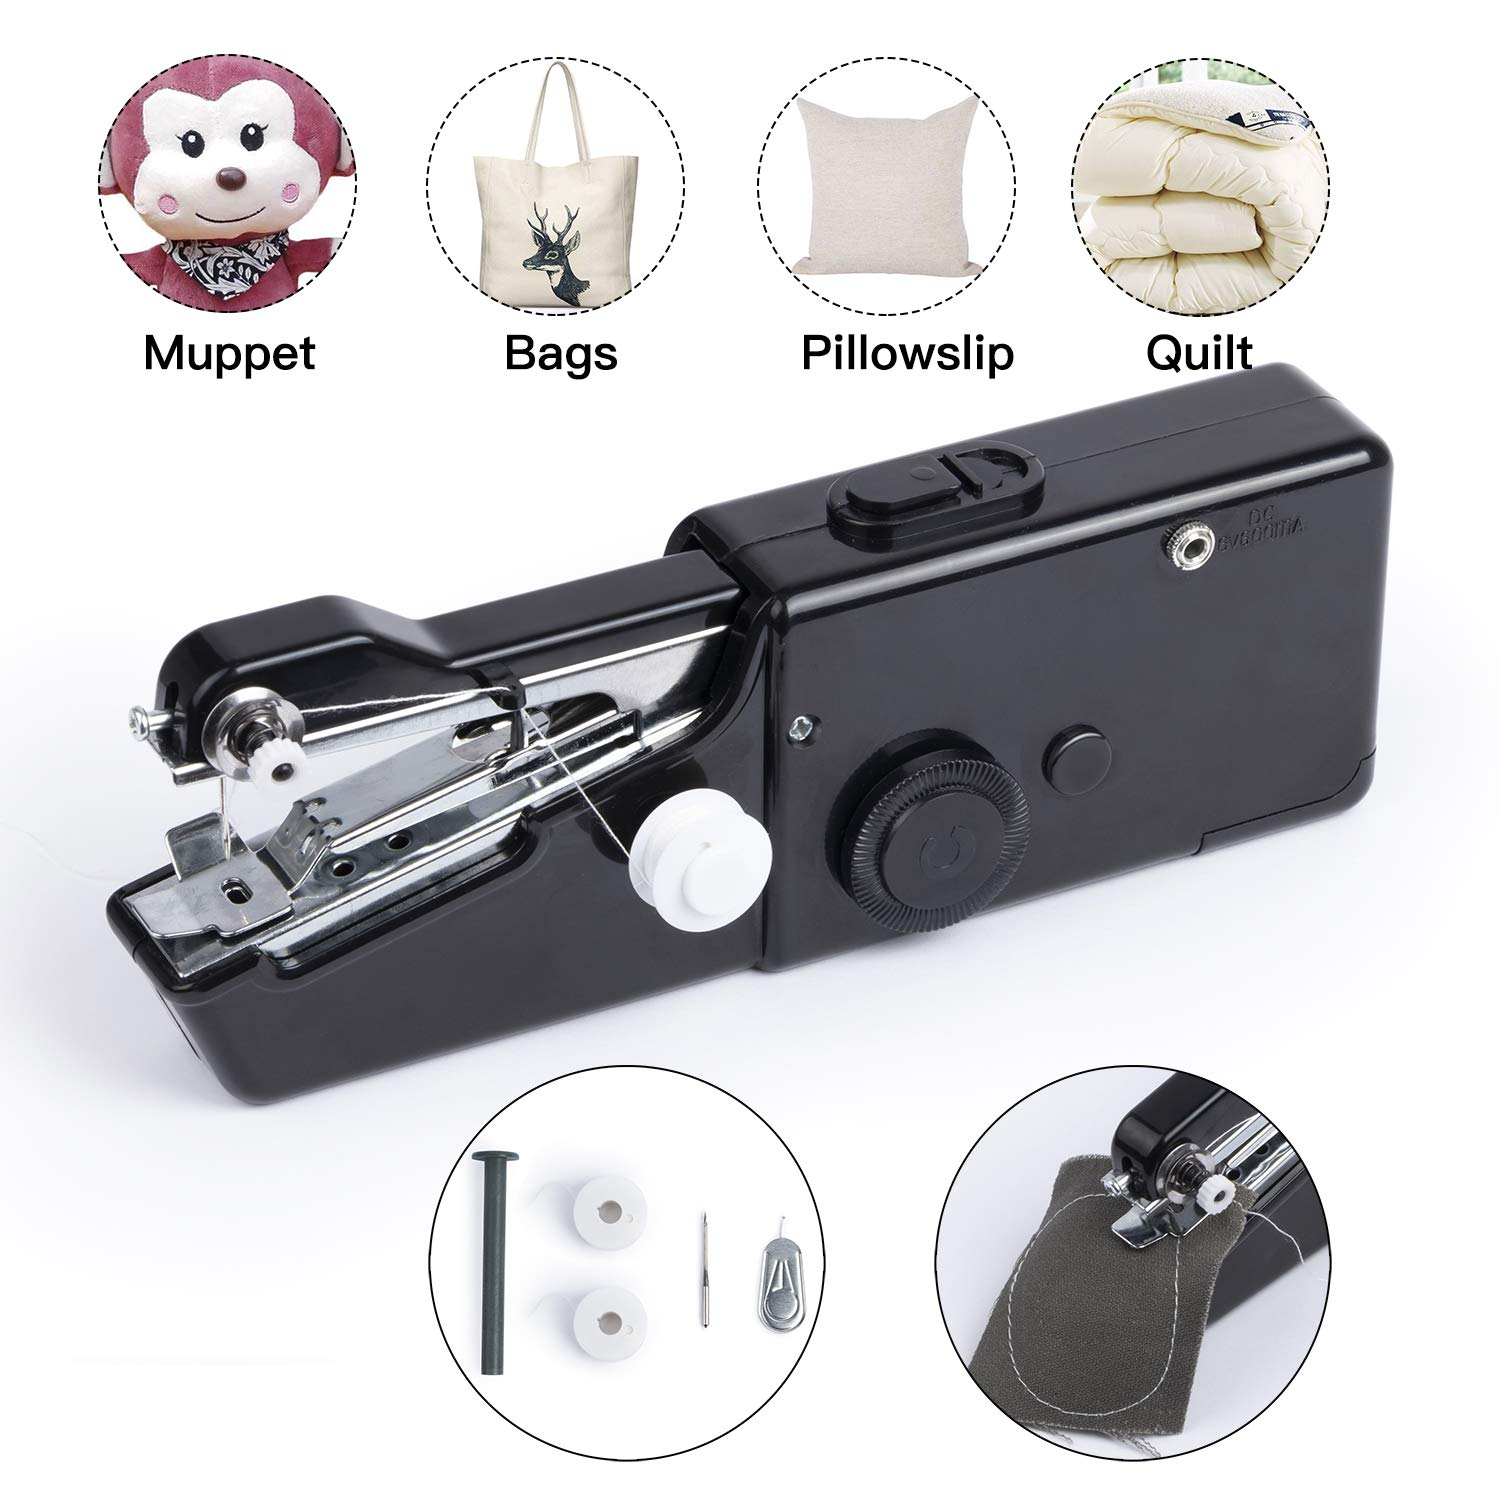 Handheld Sewing Machine Portable Hand Sewing Machine FineWish Cordless Stitching Machine Mini Stitch Craft Machine DIY Home Travel for Fabric Clothing Kids Cloth Pet Clothes (Battery Not Included) by FineWish